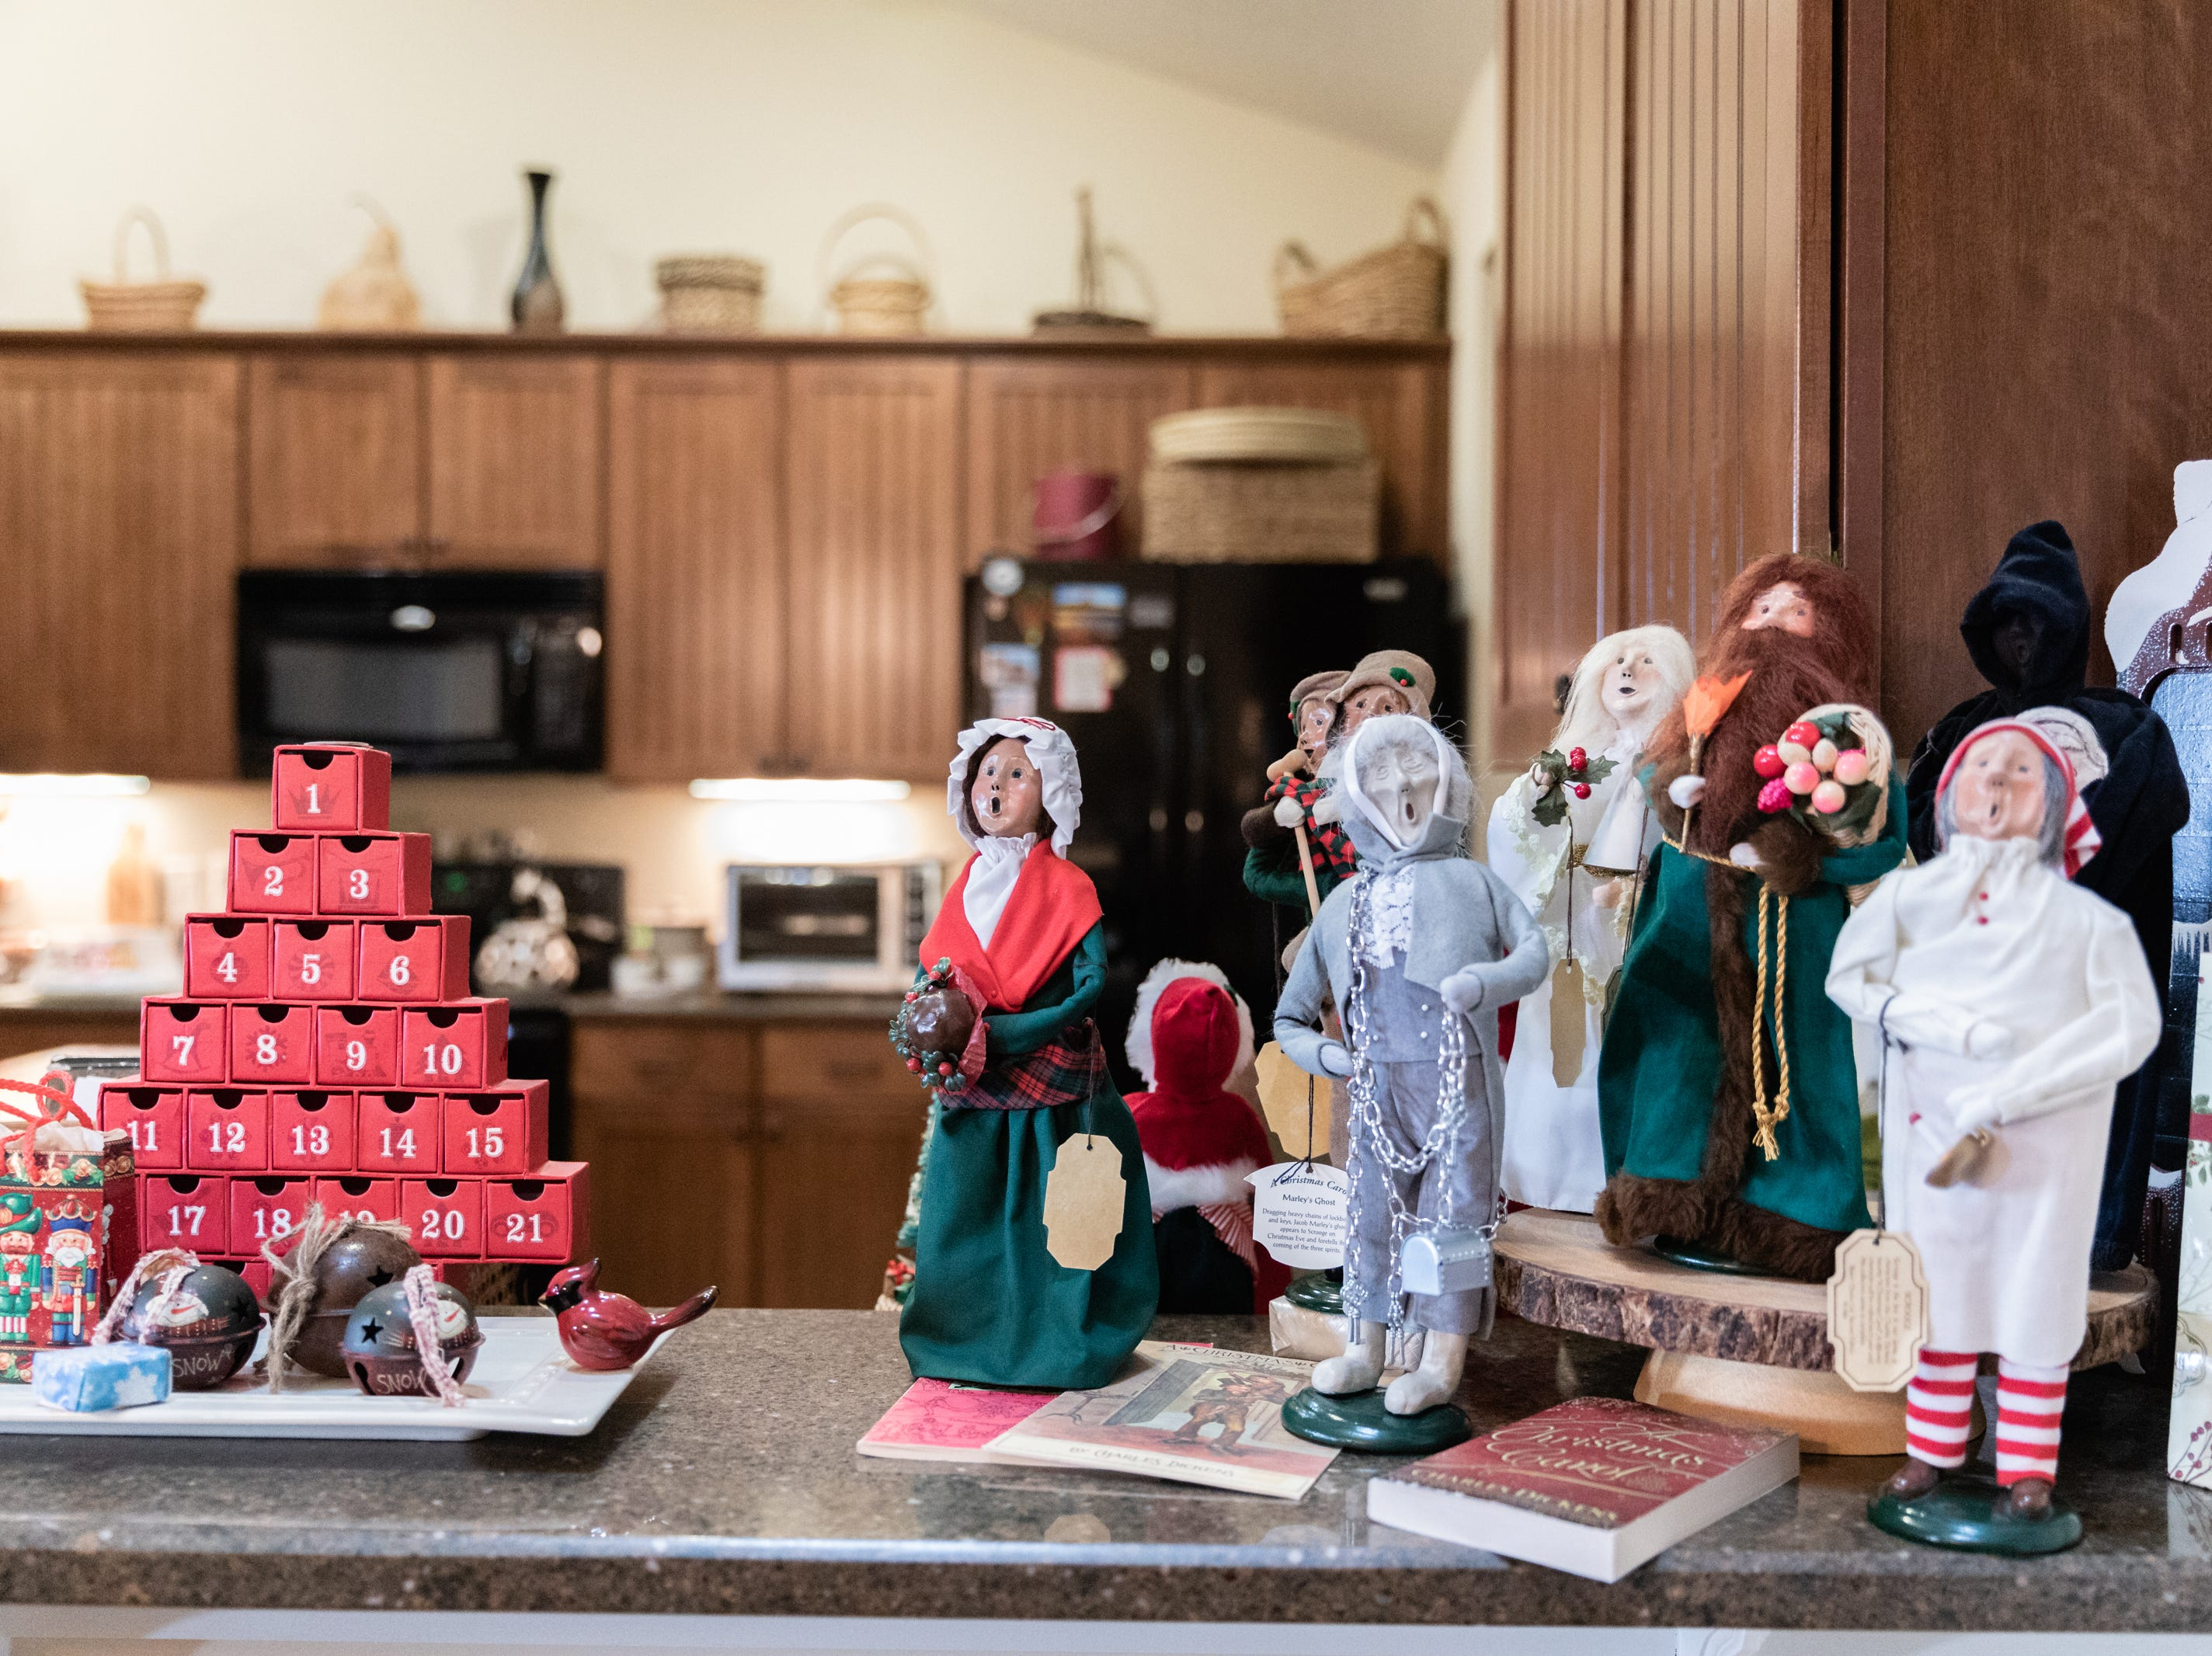 Nancy Snavely and Ken Snavely, of Candler, have been collecting Byer's Choice Carolers figurines for over 40 years. They have over 225 displayed in their home for the holidays.